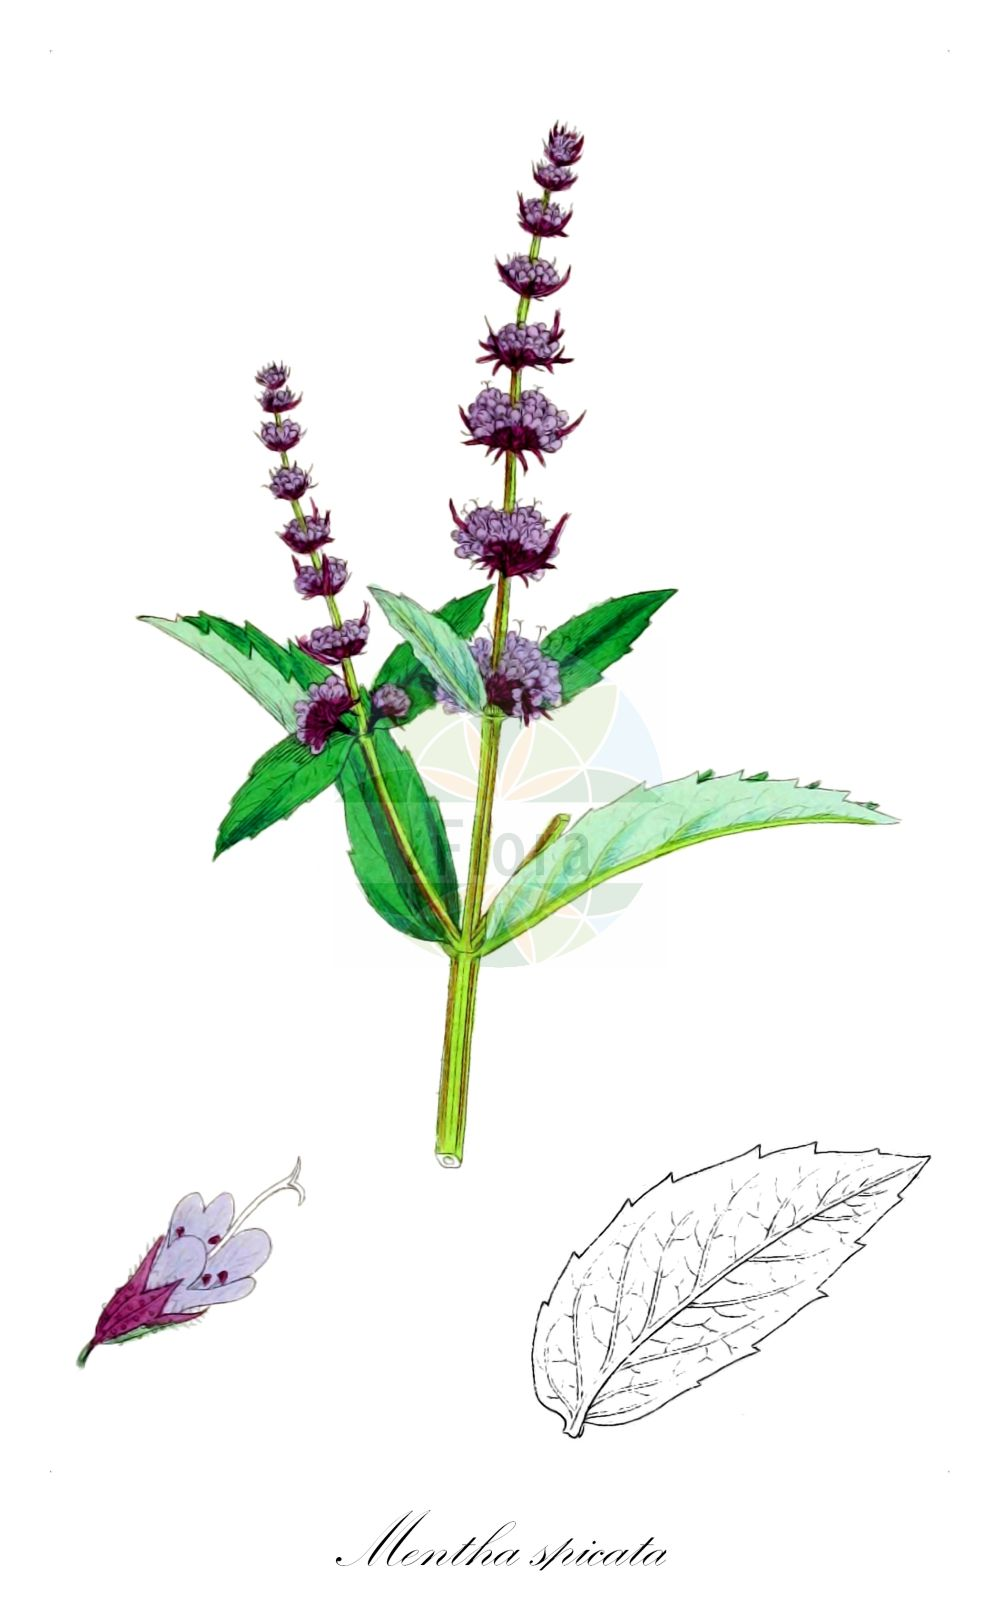 Historische Abbildung von Mentha spicata (Ähren-Minze - Spear Mint). Das Bild zeigt Blatt, Bluete, Frucht und Same. ---- Historical Drawing of Mentha spicata (Ähren-Minze - Spear Mint).The image is showing leaf, flower, fruit and seed.(Mentha spicata,Ähren-Minze,Spear Mint,Round-leaved Mint,Mentha,Minze,Mint,Lamiaceae,Lippenbluetengewaechse;Lippenbluetler,Nettle family,Blatt,Bluete,Frucht,Same,leaf,flower,fruit,seed,Sowerby (1790-1813))